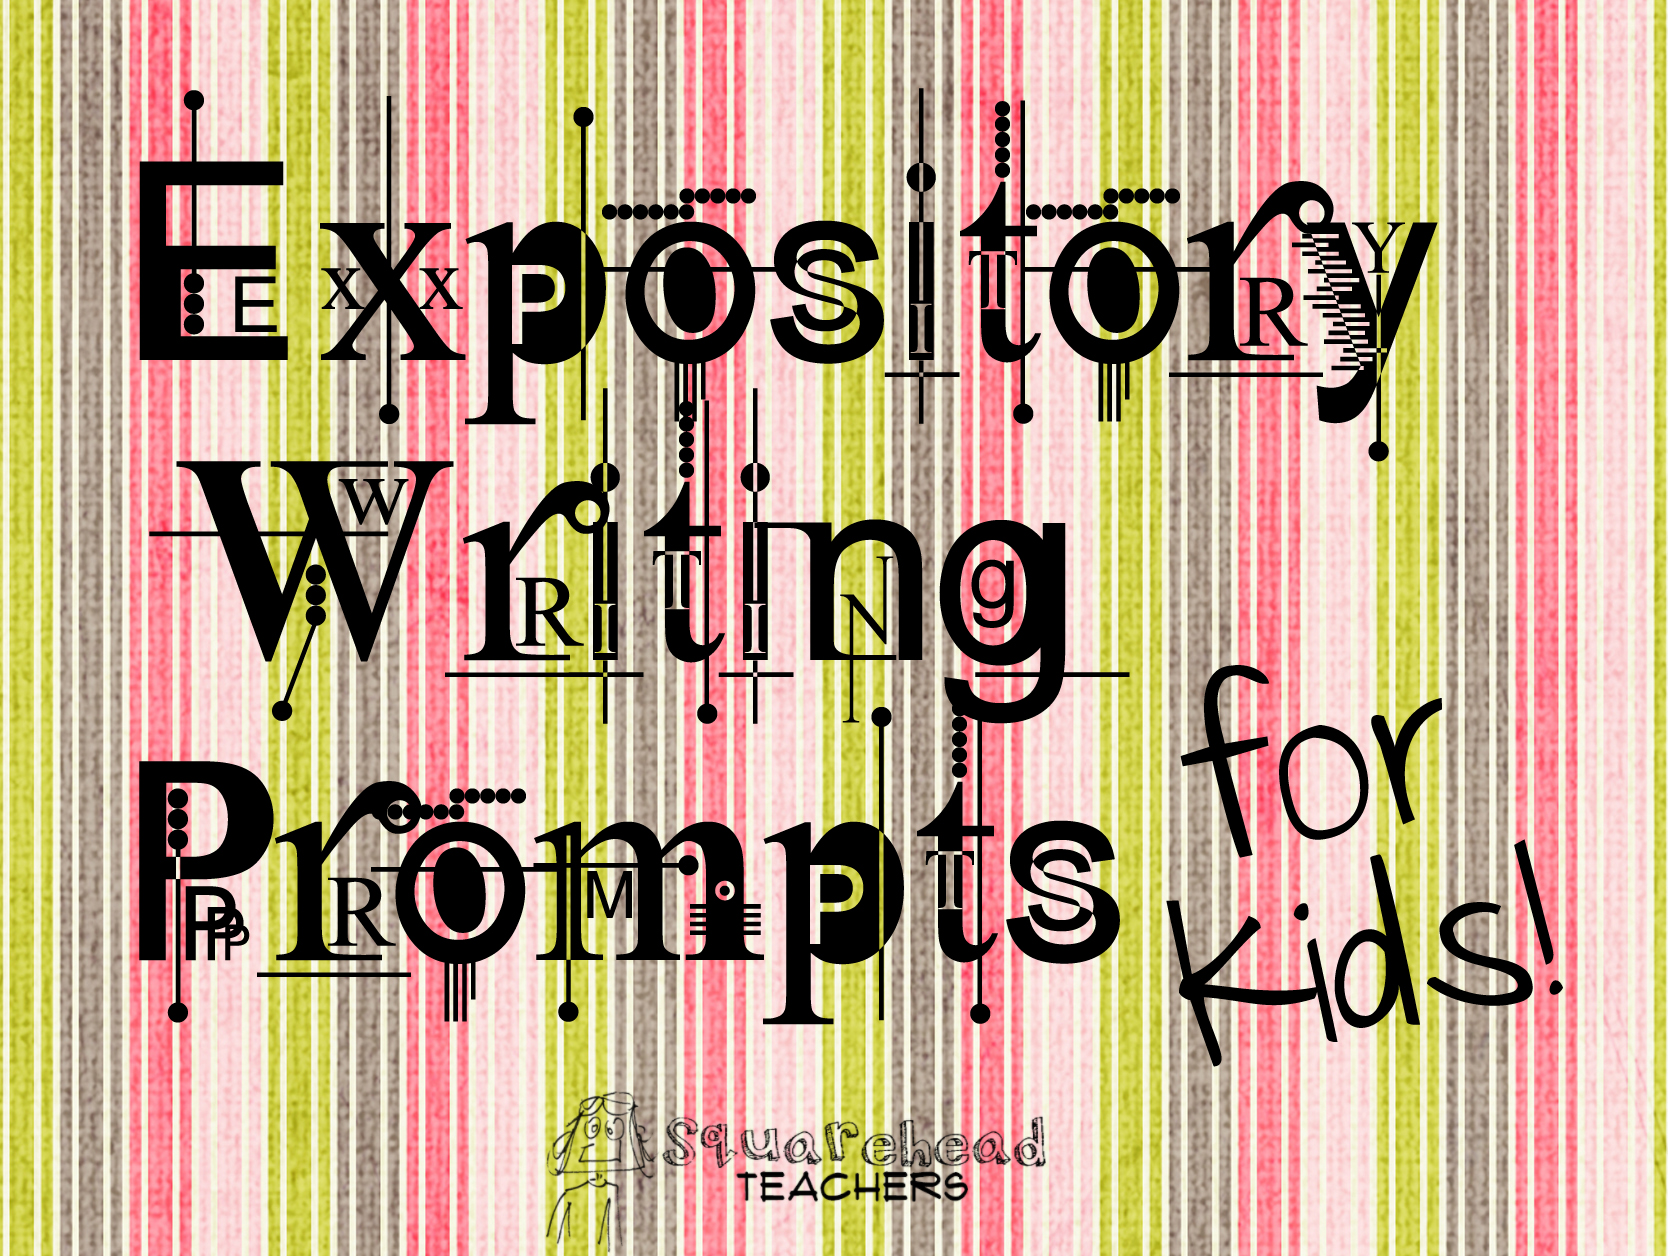 Expository Writing Tips, How to Write an Expository Essay